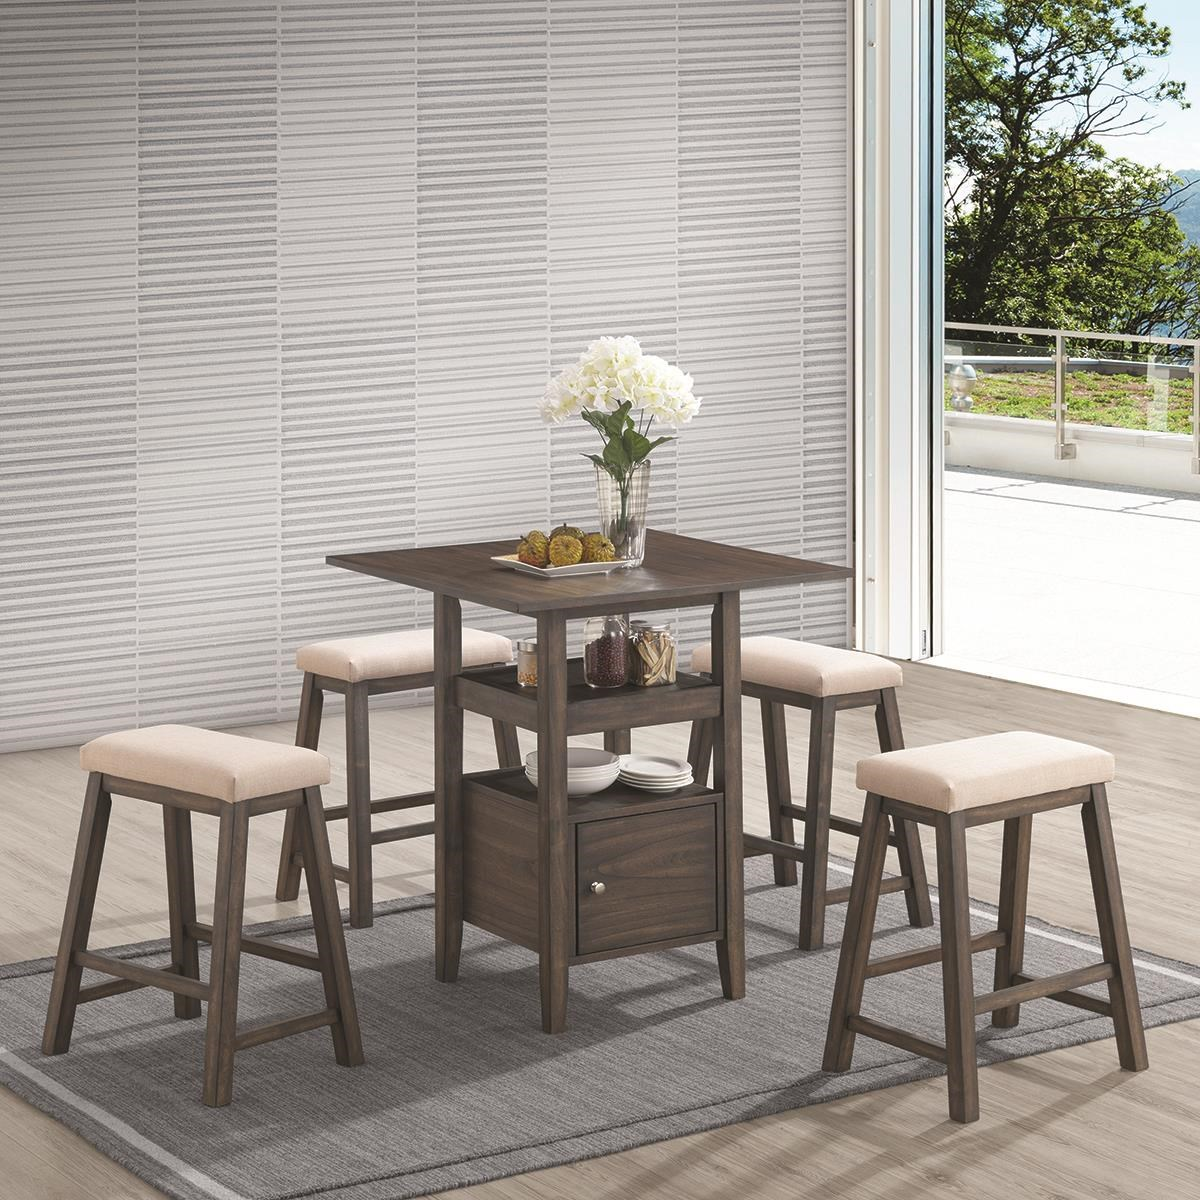 Derby 5 Piece Counter Dining Set by New Classic at Darvin Furniture